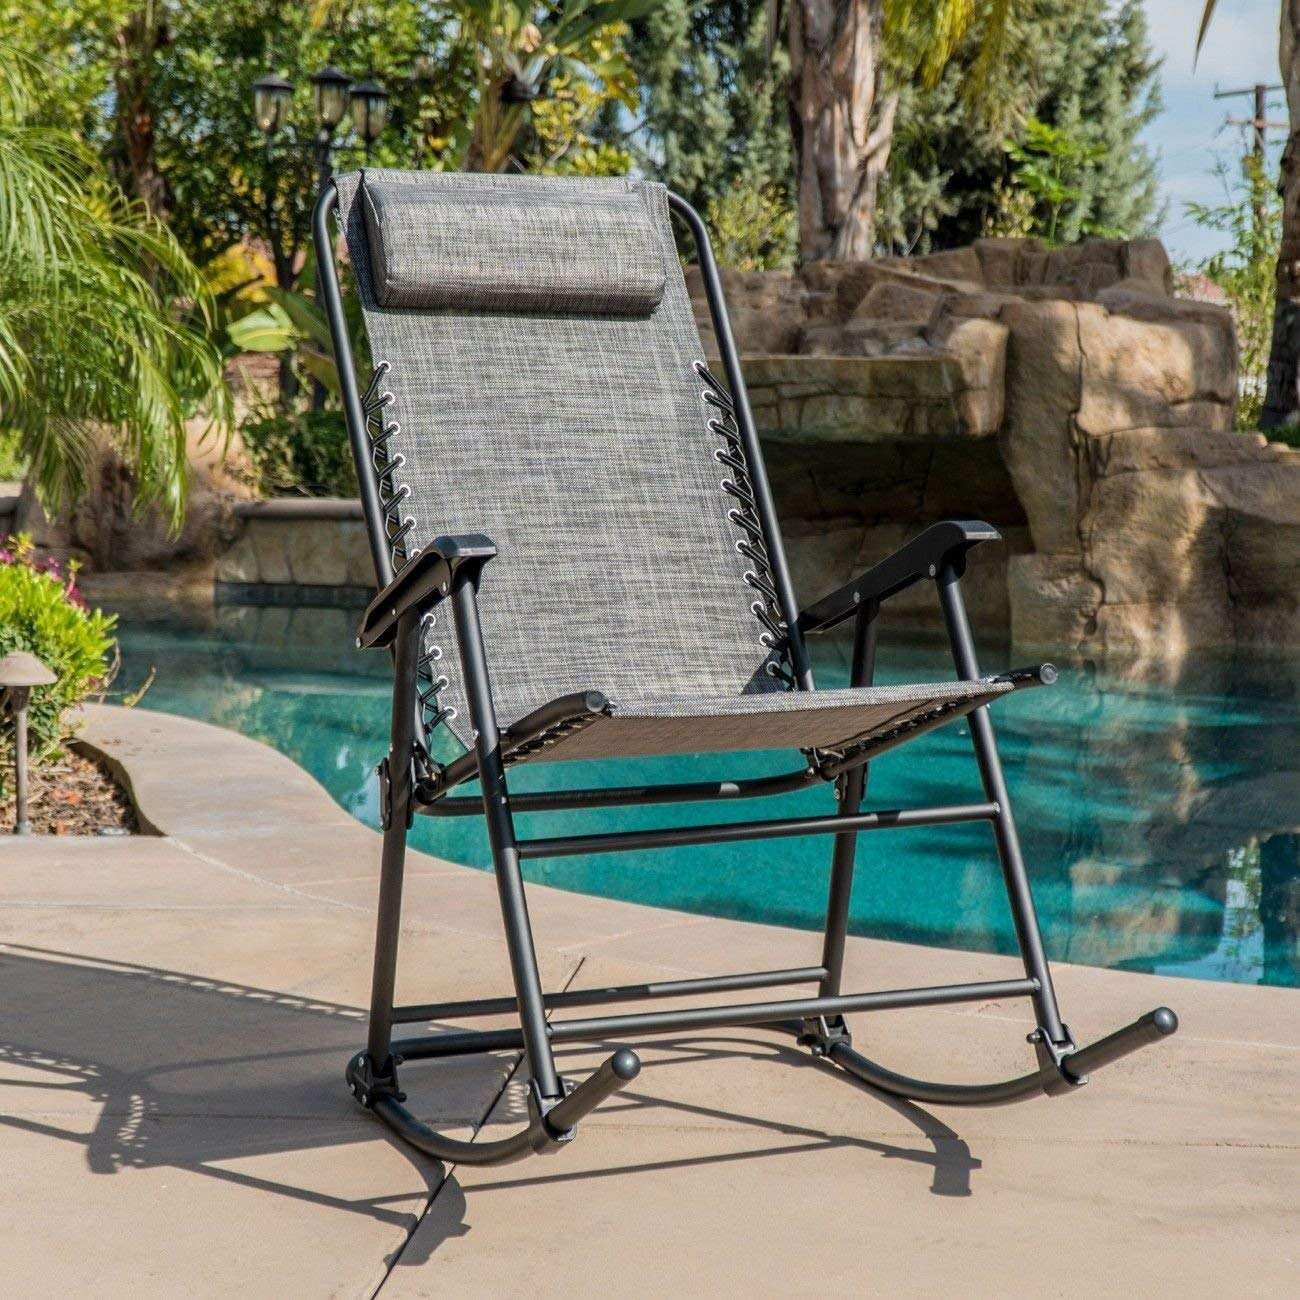 Globe House Products GHP 330-Lbs Weight Capacity Weather-Resistant Dark Grey Steel Frame Rocking Chair